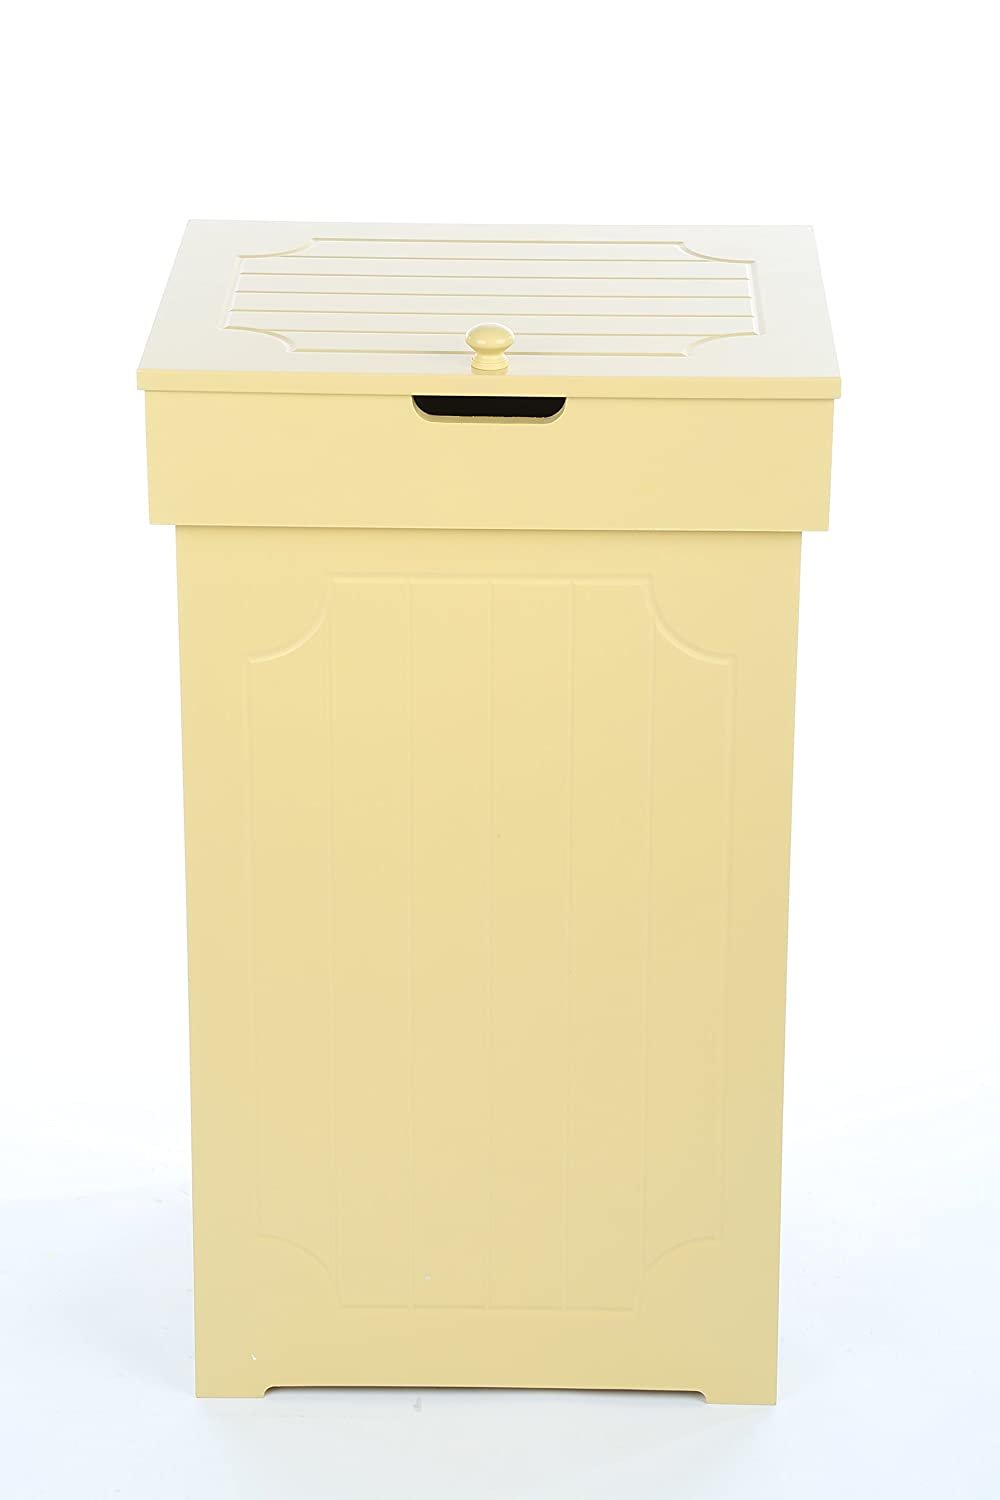 Homebi Trash Can Dustbin 13 Gallon Recycling Cans Wood Waste Bins Kitchen Trash Cabinet Space Saver Waste Basket with Lid in Yellow,16x13x26.5inch(WxDxH)